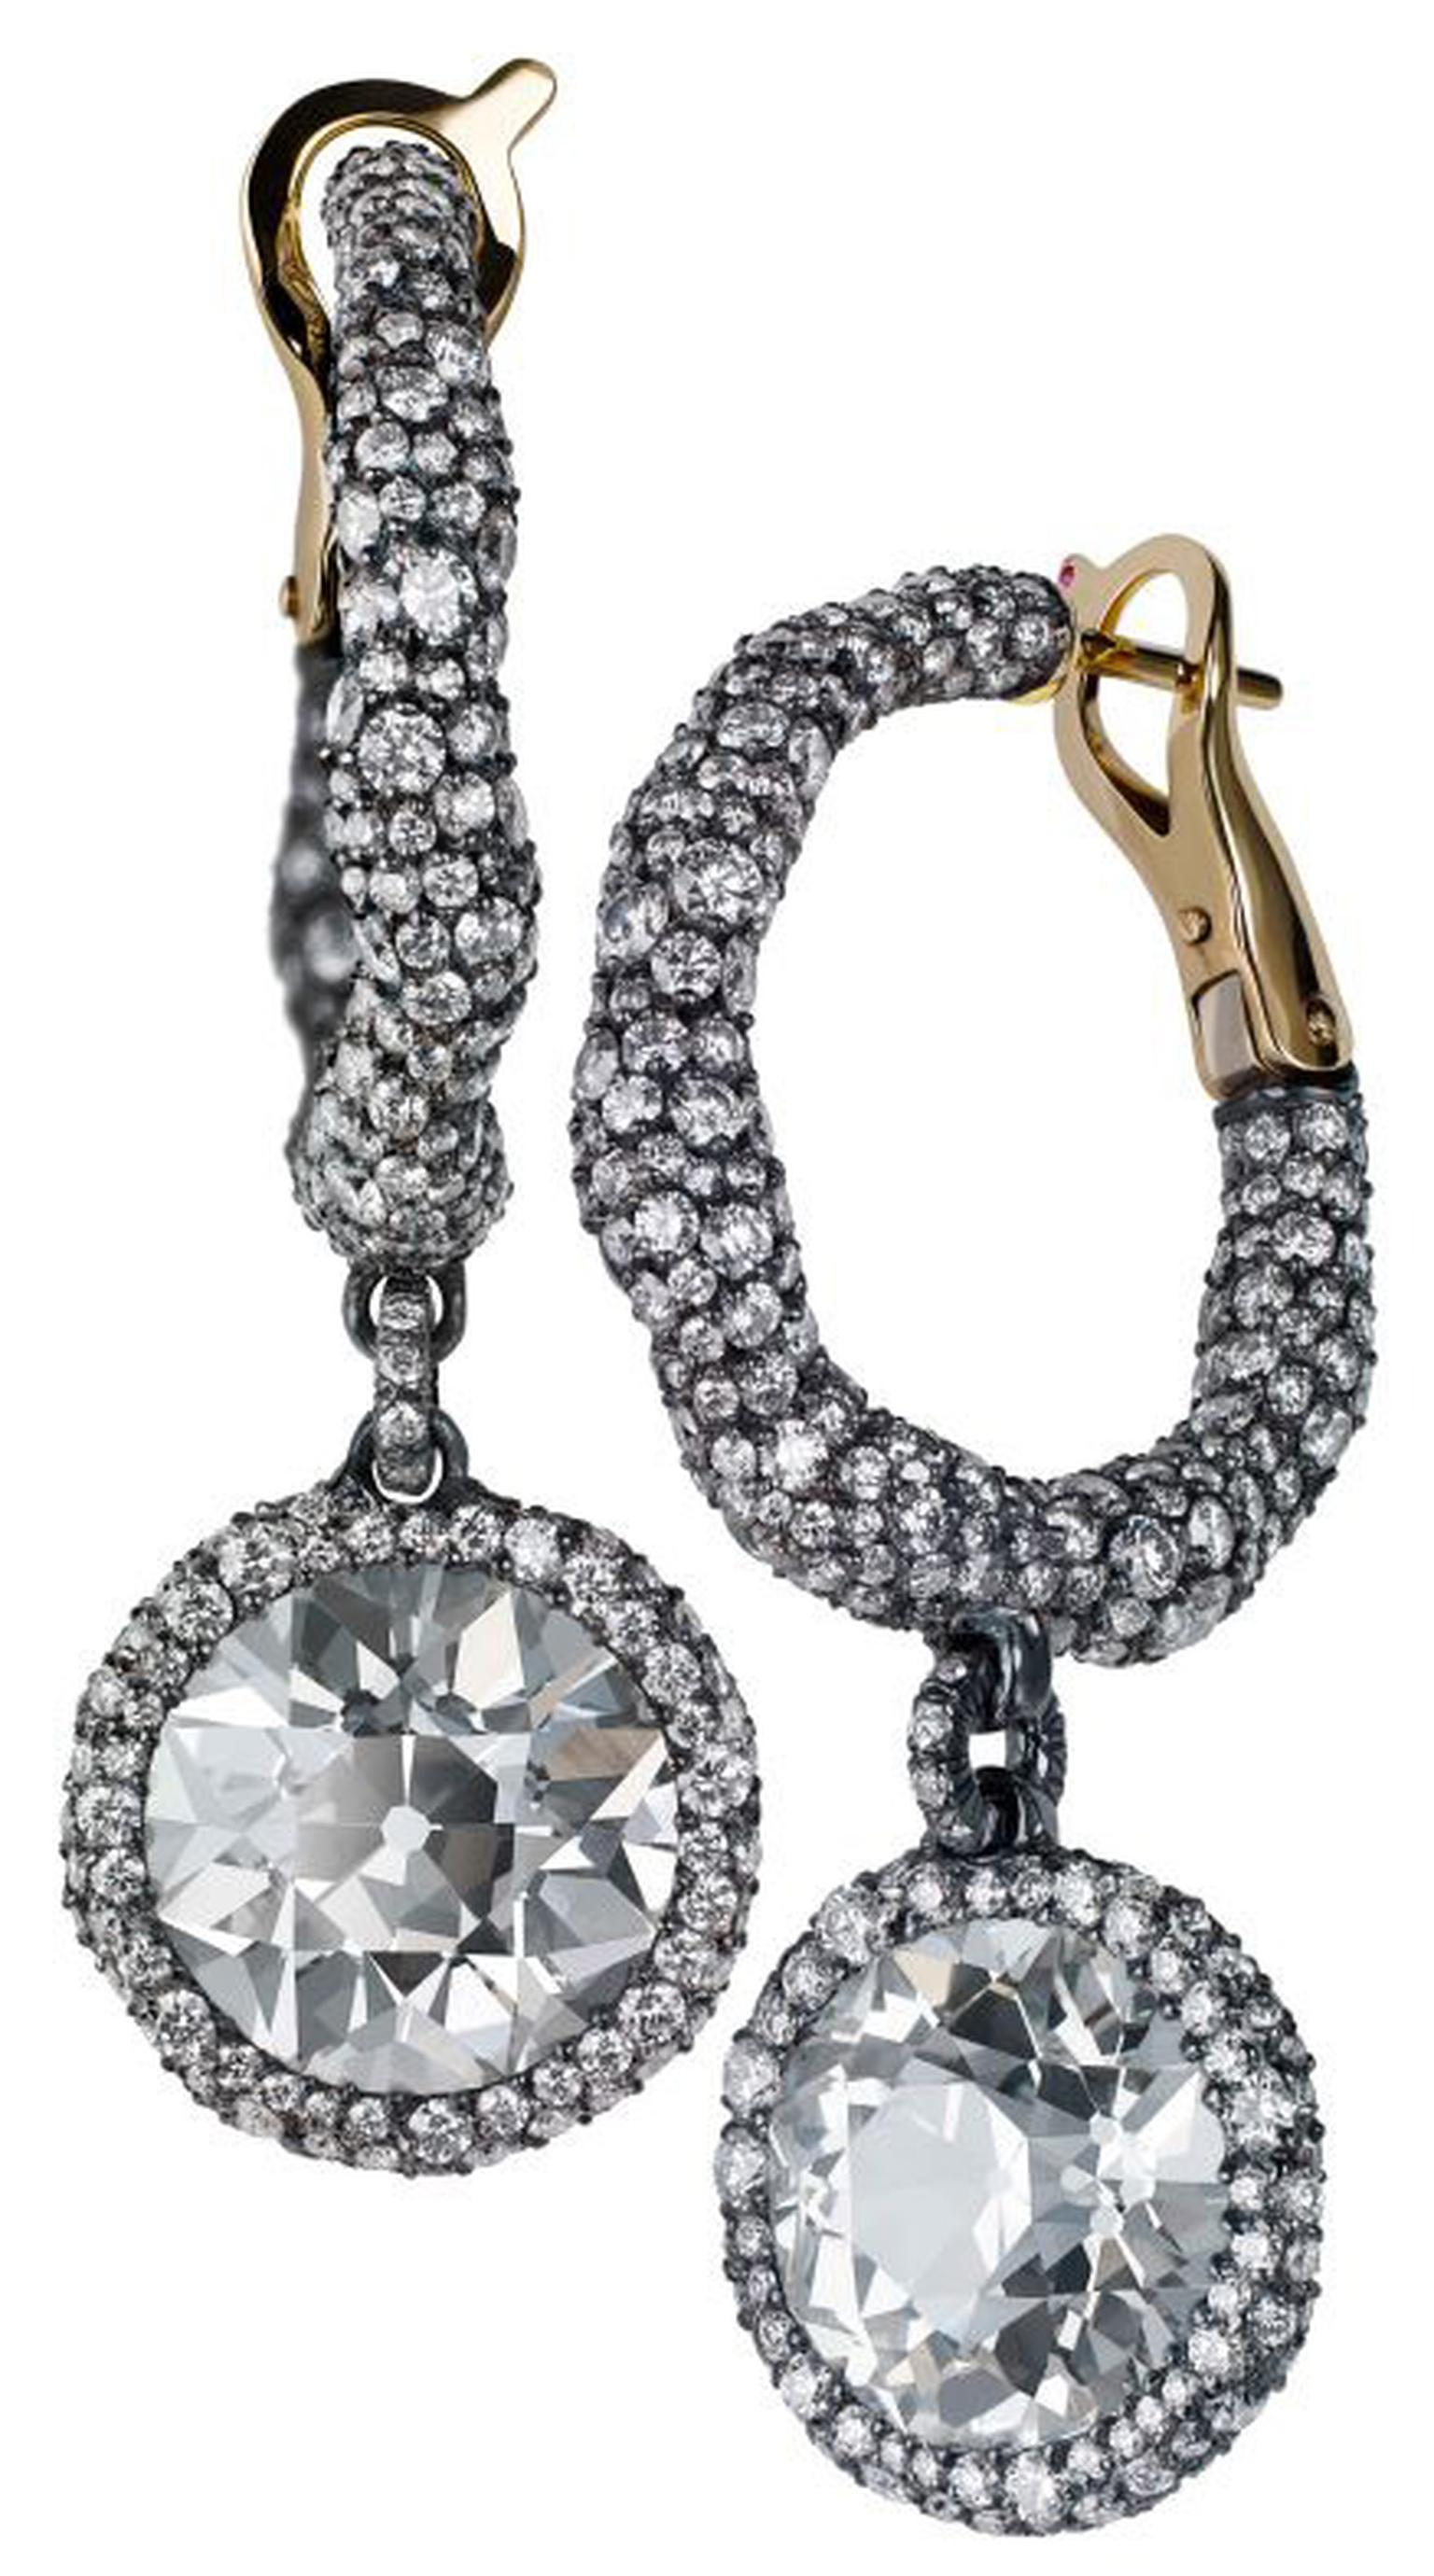 Faberge-Charmeuses-Créoles-Diamants-Antiques-Earrings.jpg